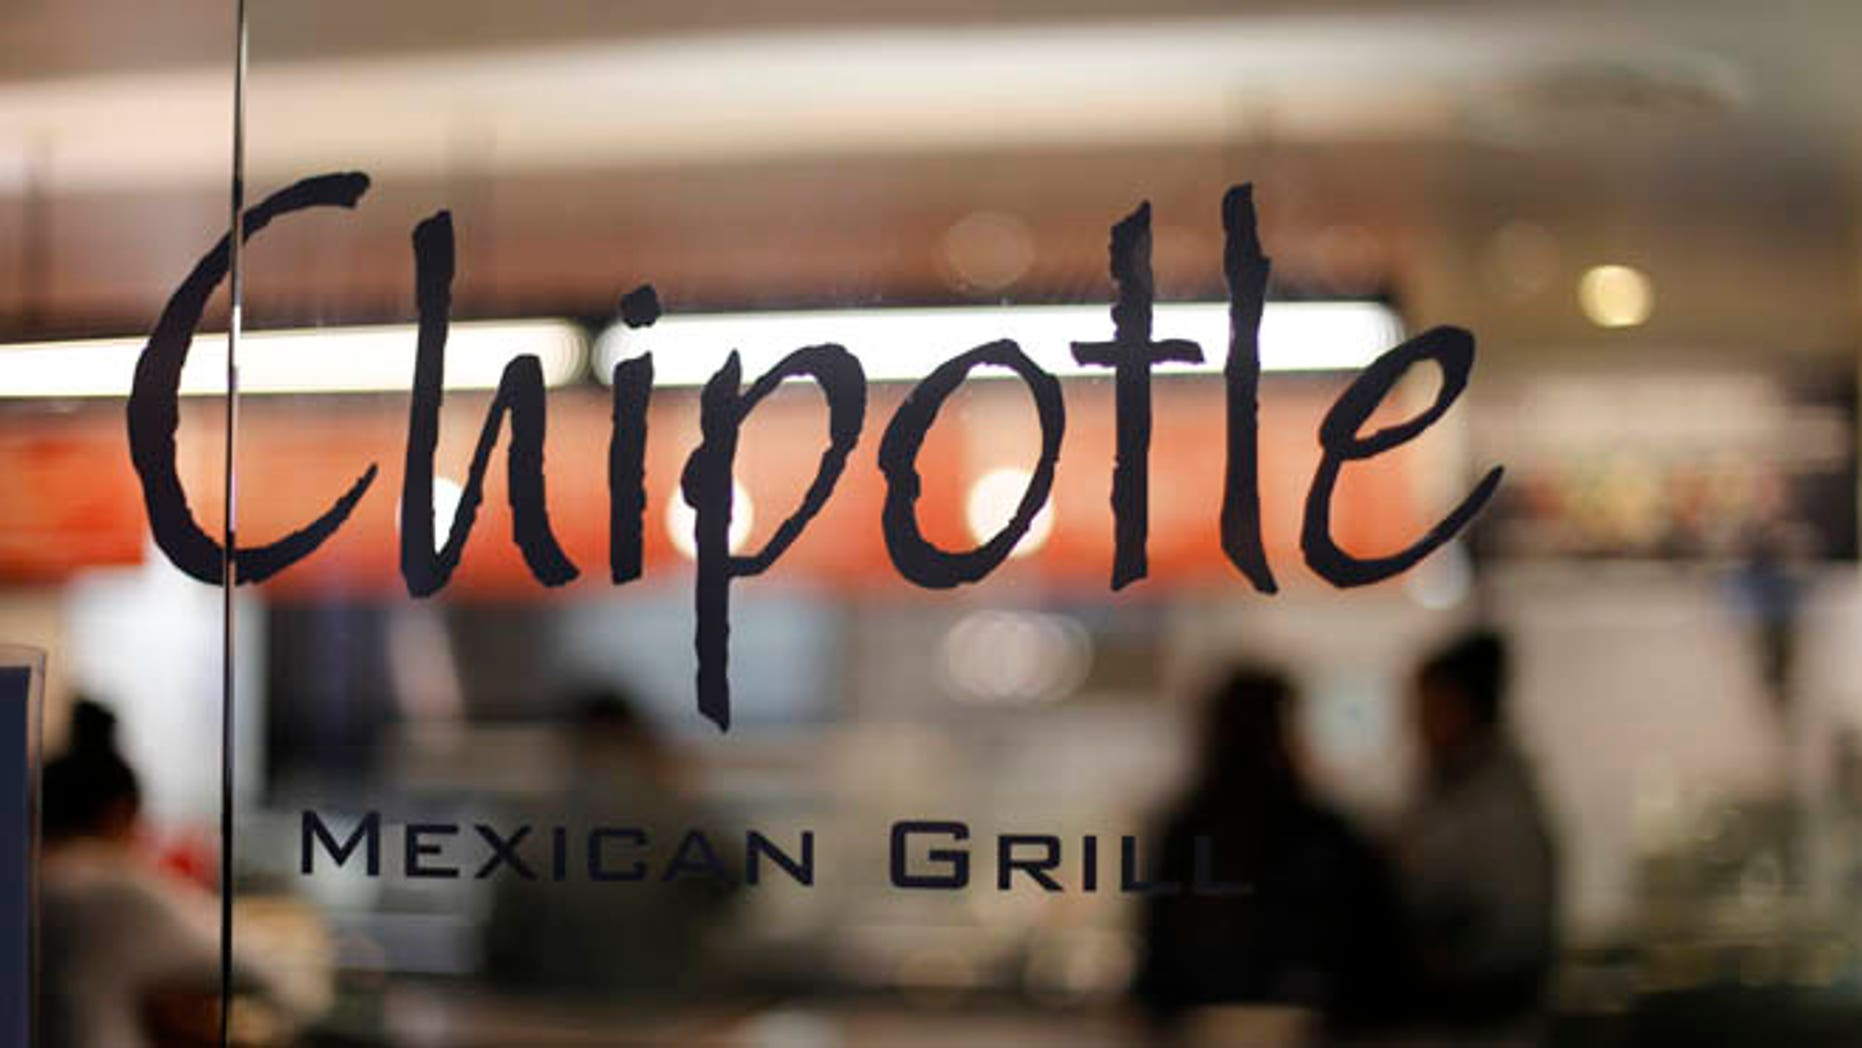 This Sunday, Dec. 27, 2015, photo, shows a Chipotle restaurant at Union Station in Washington. Chipotle said Wednesday, Jan. 6, 2016, it has been served with a federal grand jury subpoena as part of a criminal investigation tied to a norovirus outbreak this summer at one of its restaurants in California. (AP Photo/Gene J. Puskar)